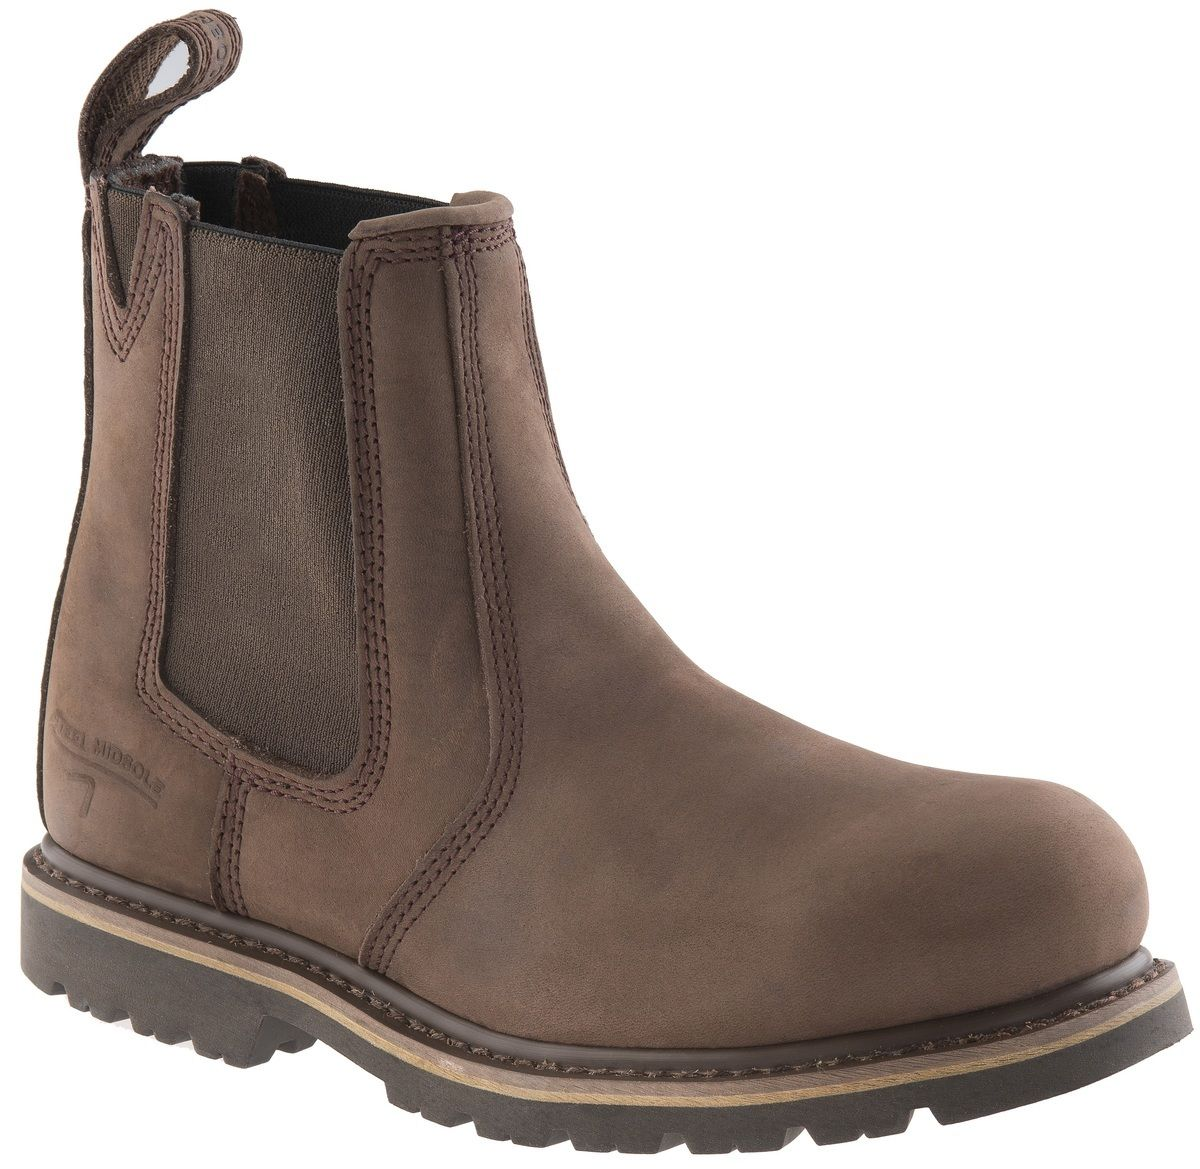 Buckler B1150SM chocolate oily leather K2 sole safety dealer boot size 4 to 13